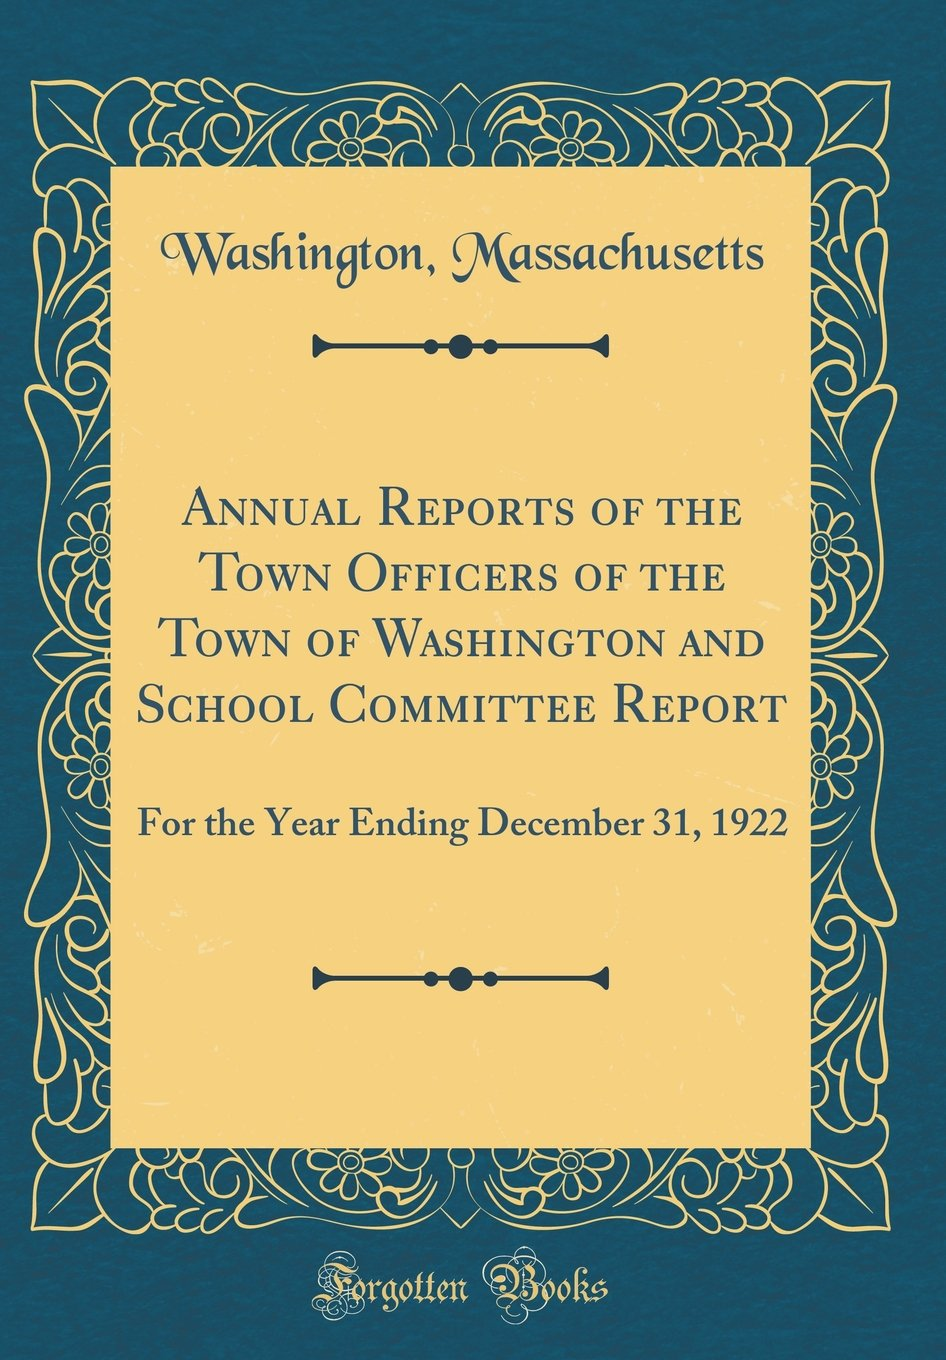 Download Annual Reports of the Town Officers of the Town of Washington and School Committee Report: For the Year Ending December 31, 1922 (Classic Reprint) pdf